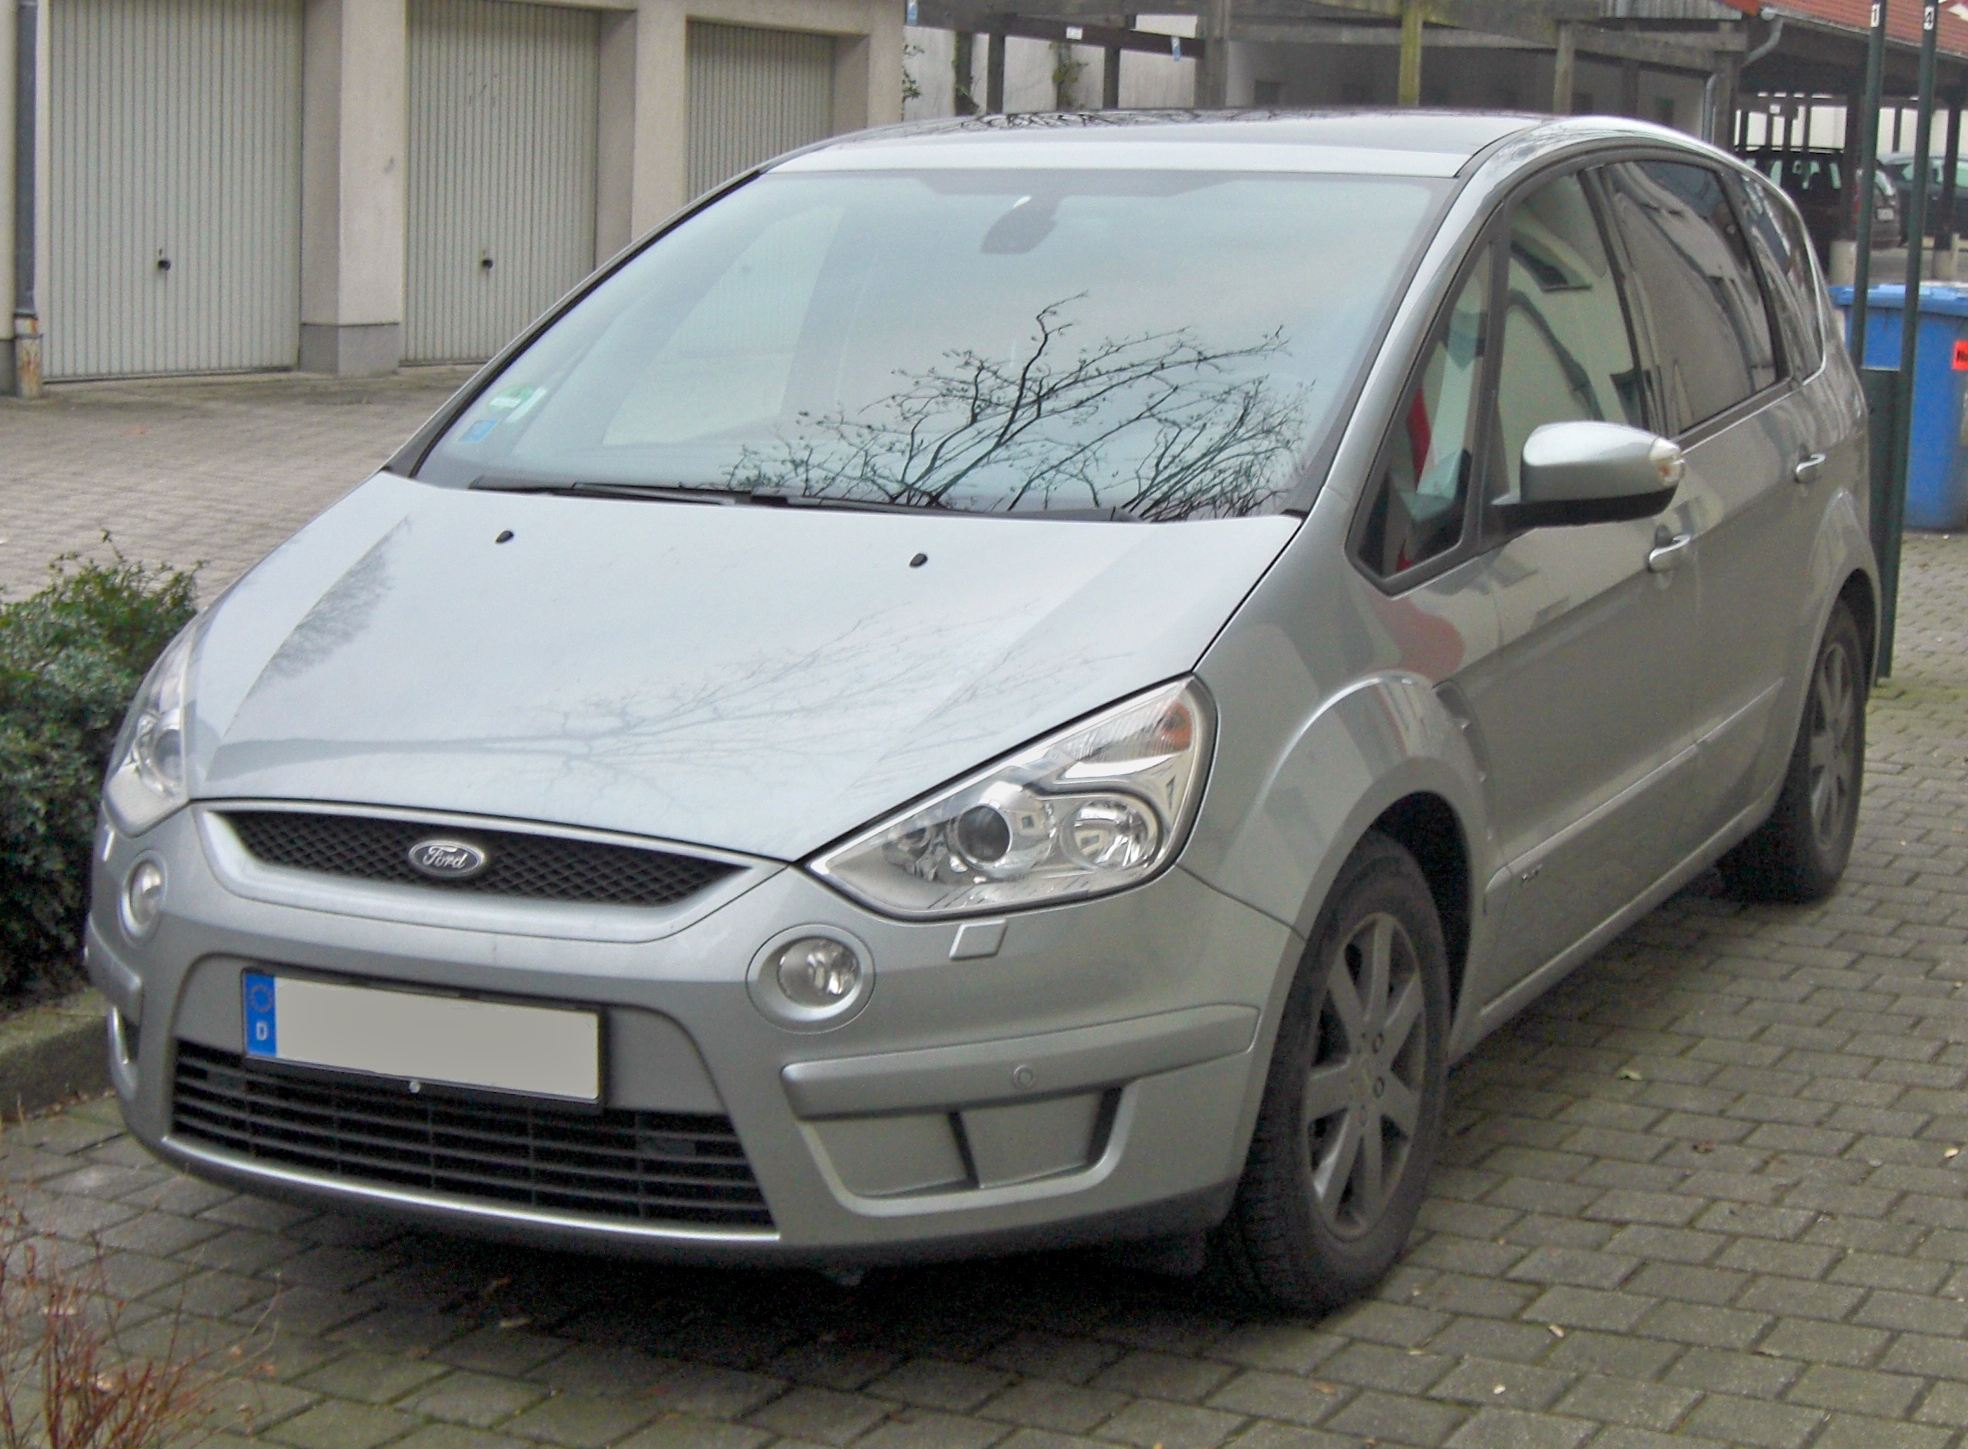 file ford s max front jpg wikimedia commons. Black Bedroom Furniture Sets. Home Design Ideas